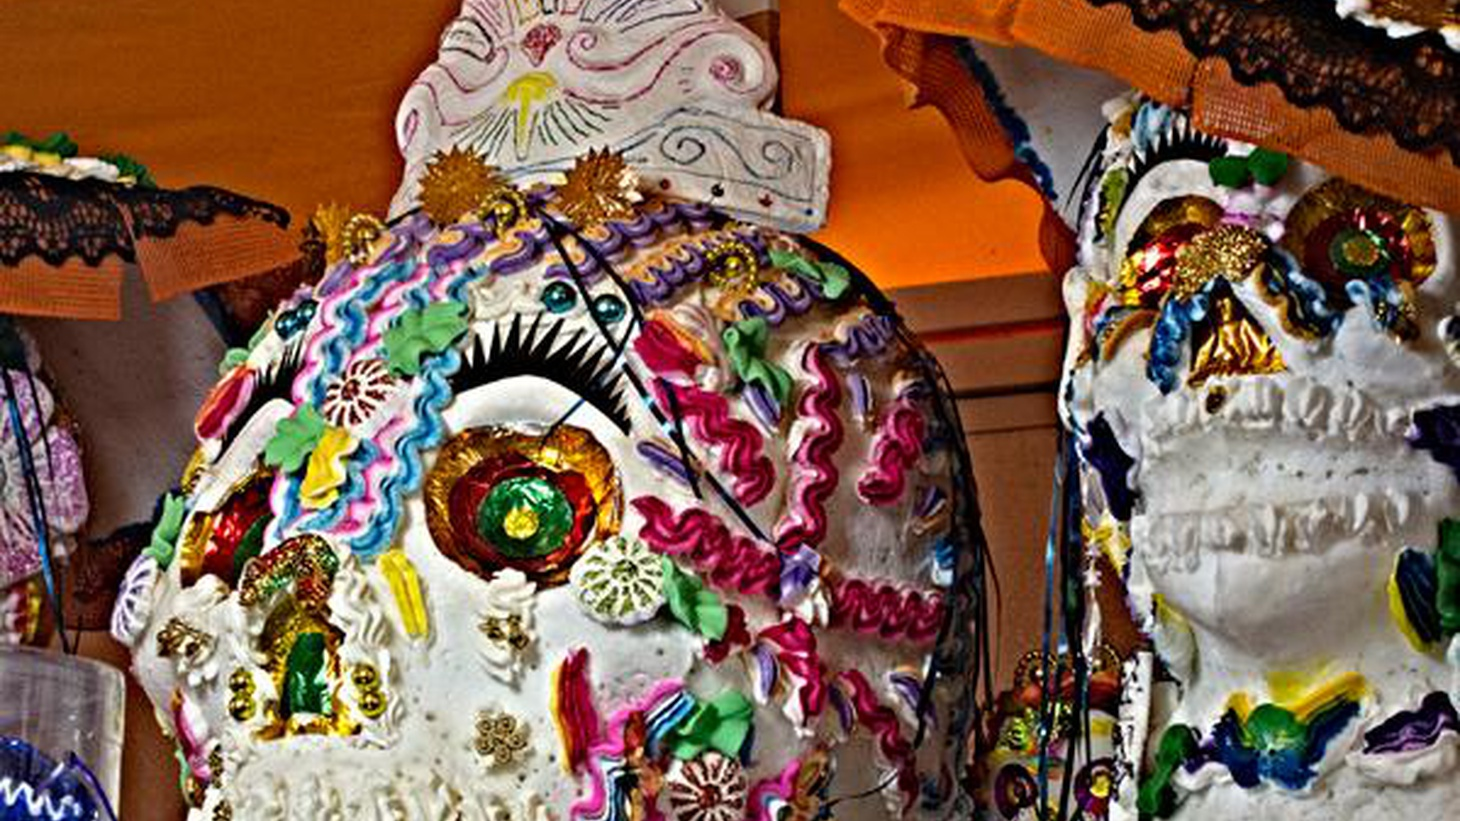 In this story, producer Anayansi Diaz-Cortes looks to find meaning during this year's Day of the Dead celebration.